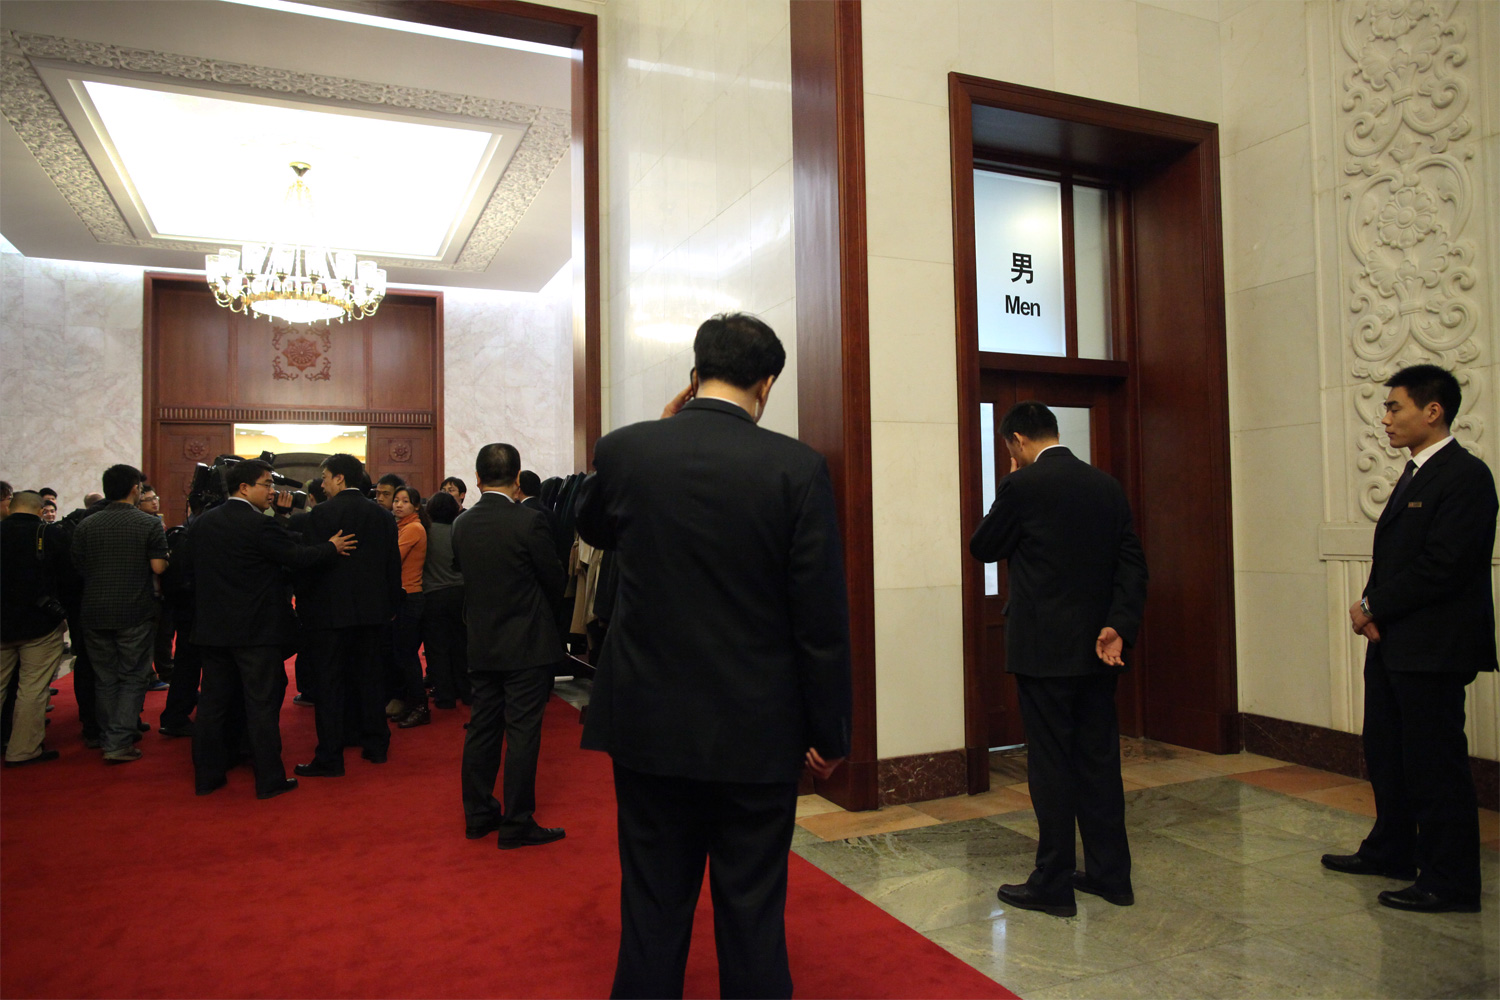 Security guards for Zhang Chunxian, Secretary of the Xinjiang Provincial Committee of the CPC, stand outside the men's restroom during the Xinjiang Provincial Delegation Open Day, March 8, 2011. Zhang, not pictured, had stepped inside the restroom and journalists had attempted to follow him in to ask questions.